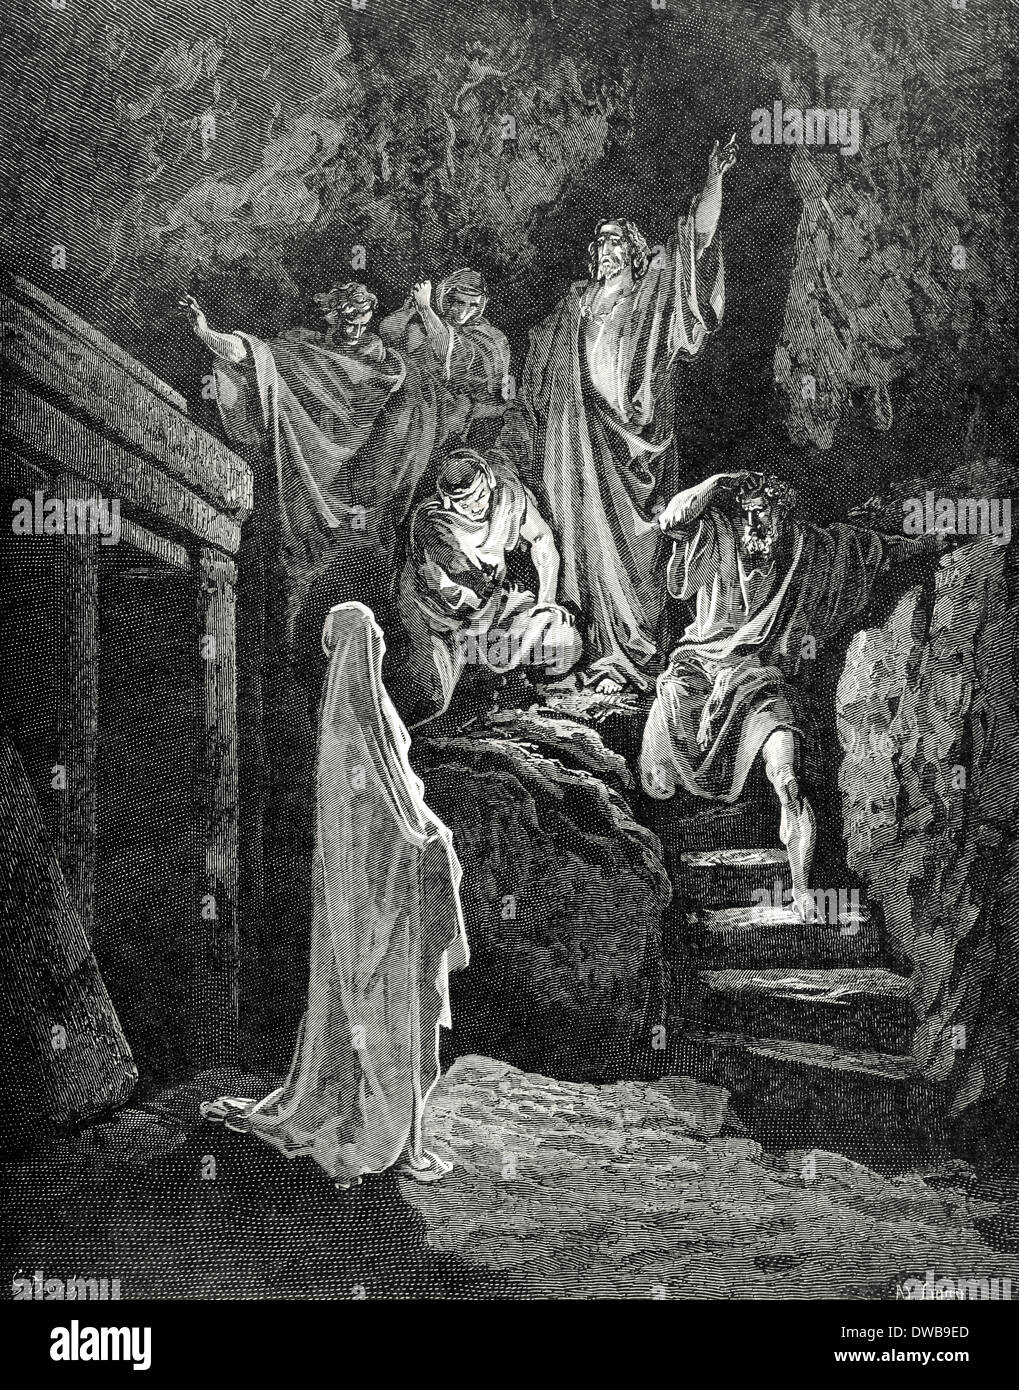 Resurrection of Lazarus. Engraving by Gustave Dore. Gospel of John, XI. - Stock Image